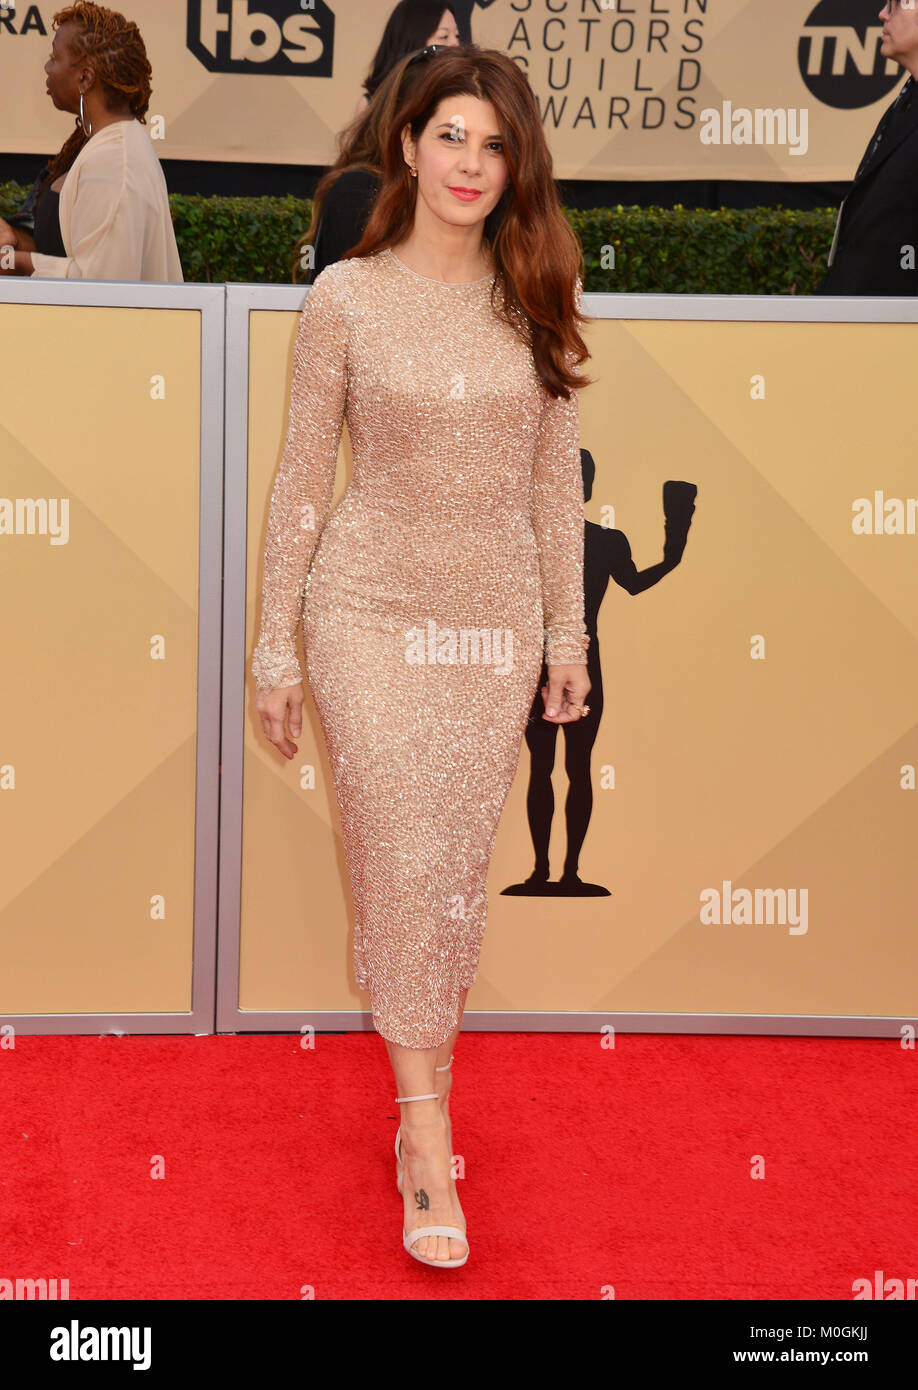 Los Angeles, USA. 21st Jan, 2018. Marisa Tomei 149 attends the 24th Annual Screen Actors Guild Awards at The Shrine - Stock Image